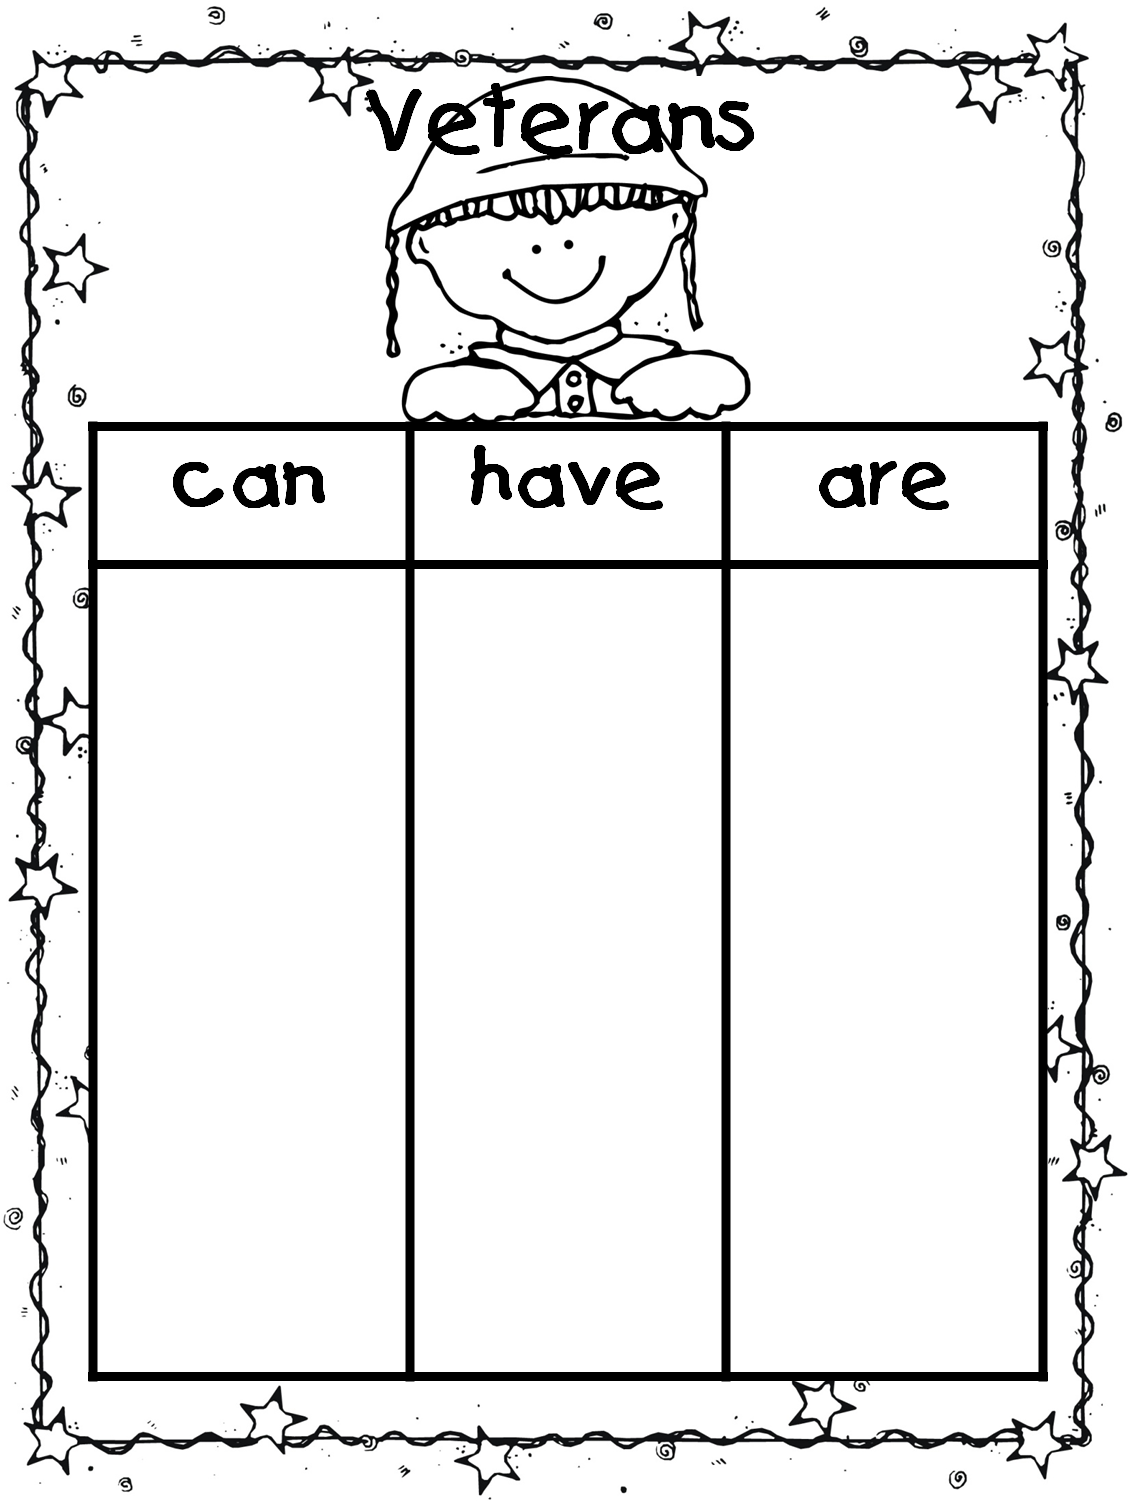 Uncategorized Free Veterans Day Worksheets veterans day worksheets for kids free library crafts enchantedlearning com